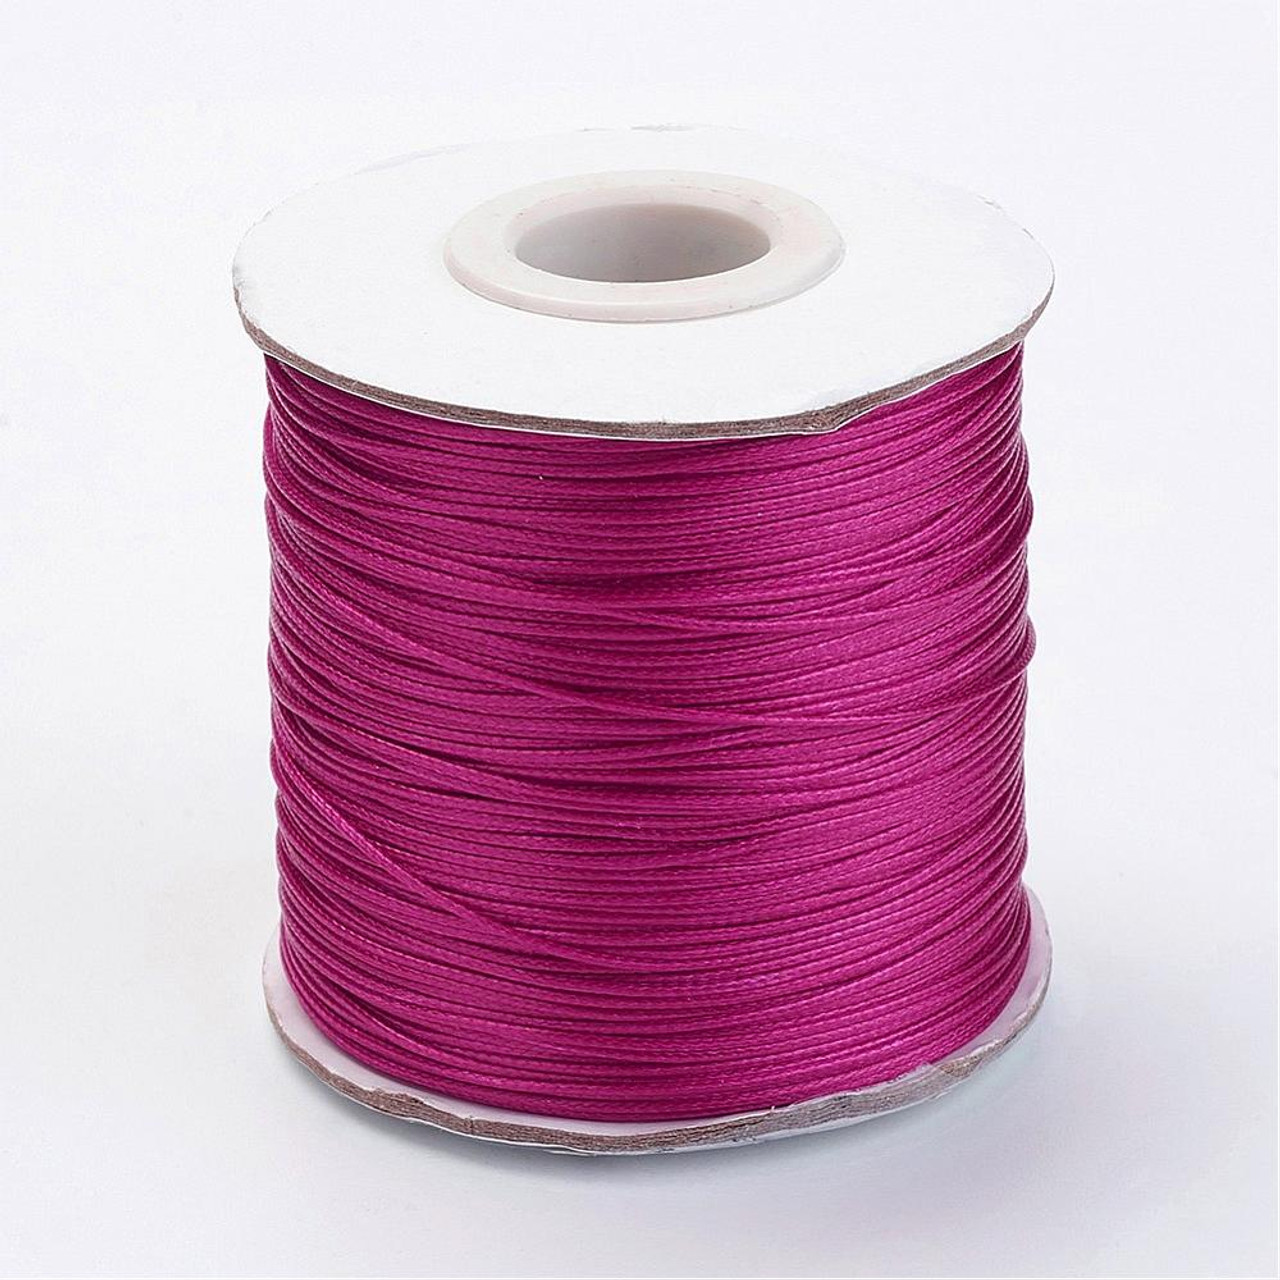 .5mm Medium Violet Red Waxed Polyester Cord - 10yds